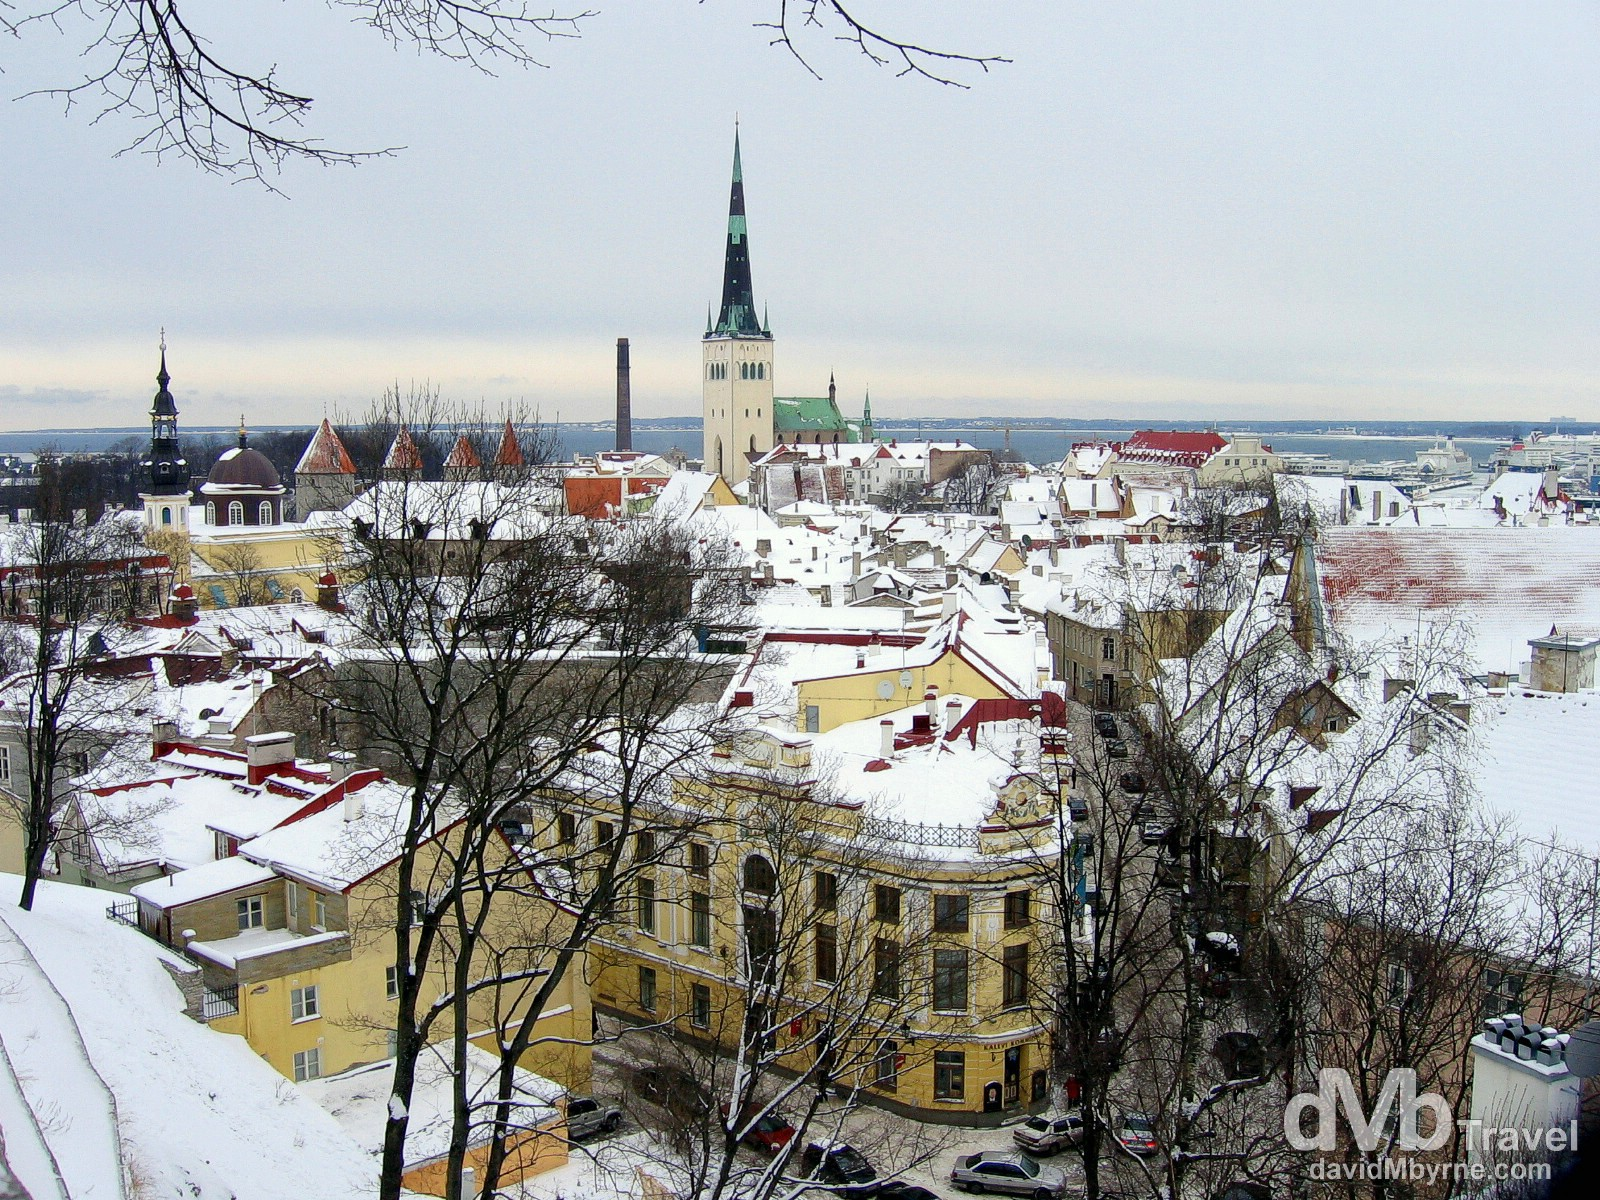 A snowy Old Town Tallinn, Estonia, as seen from a lookout in the Toompea area of the city. March 2, 2006.